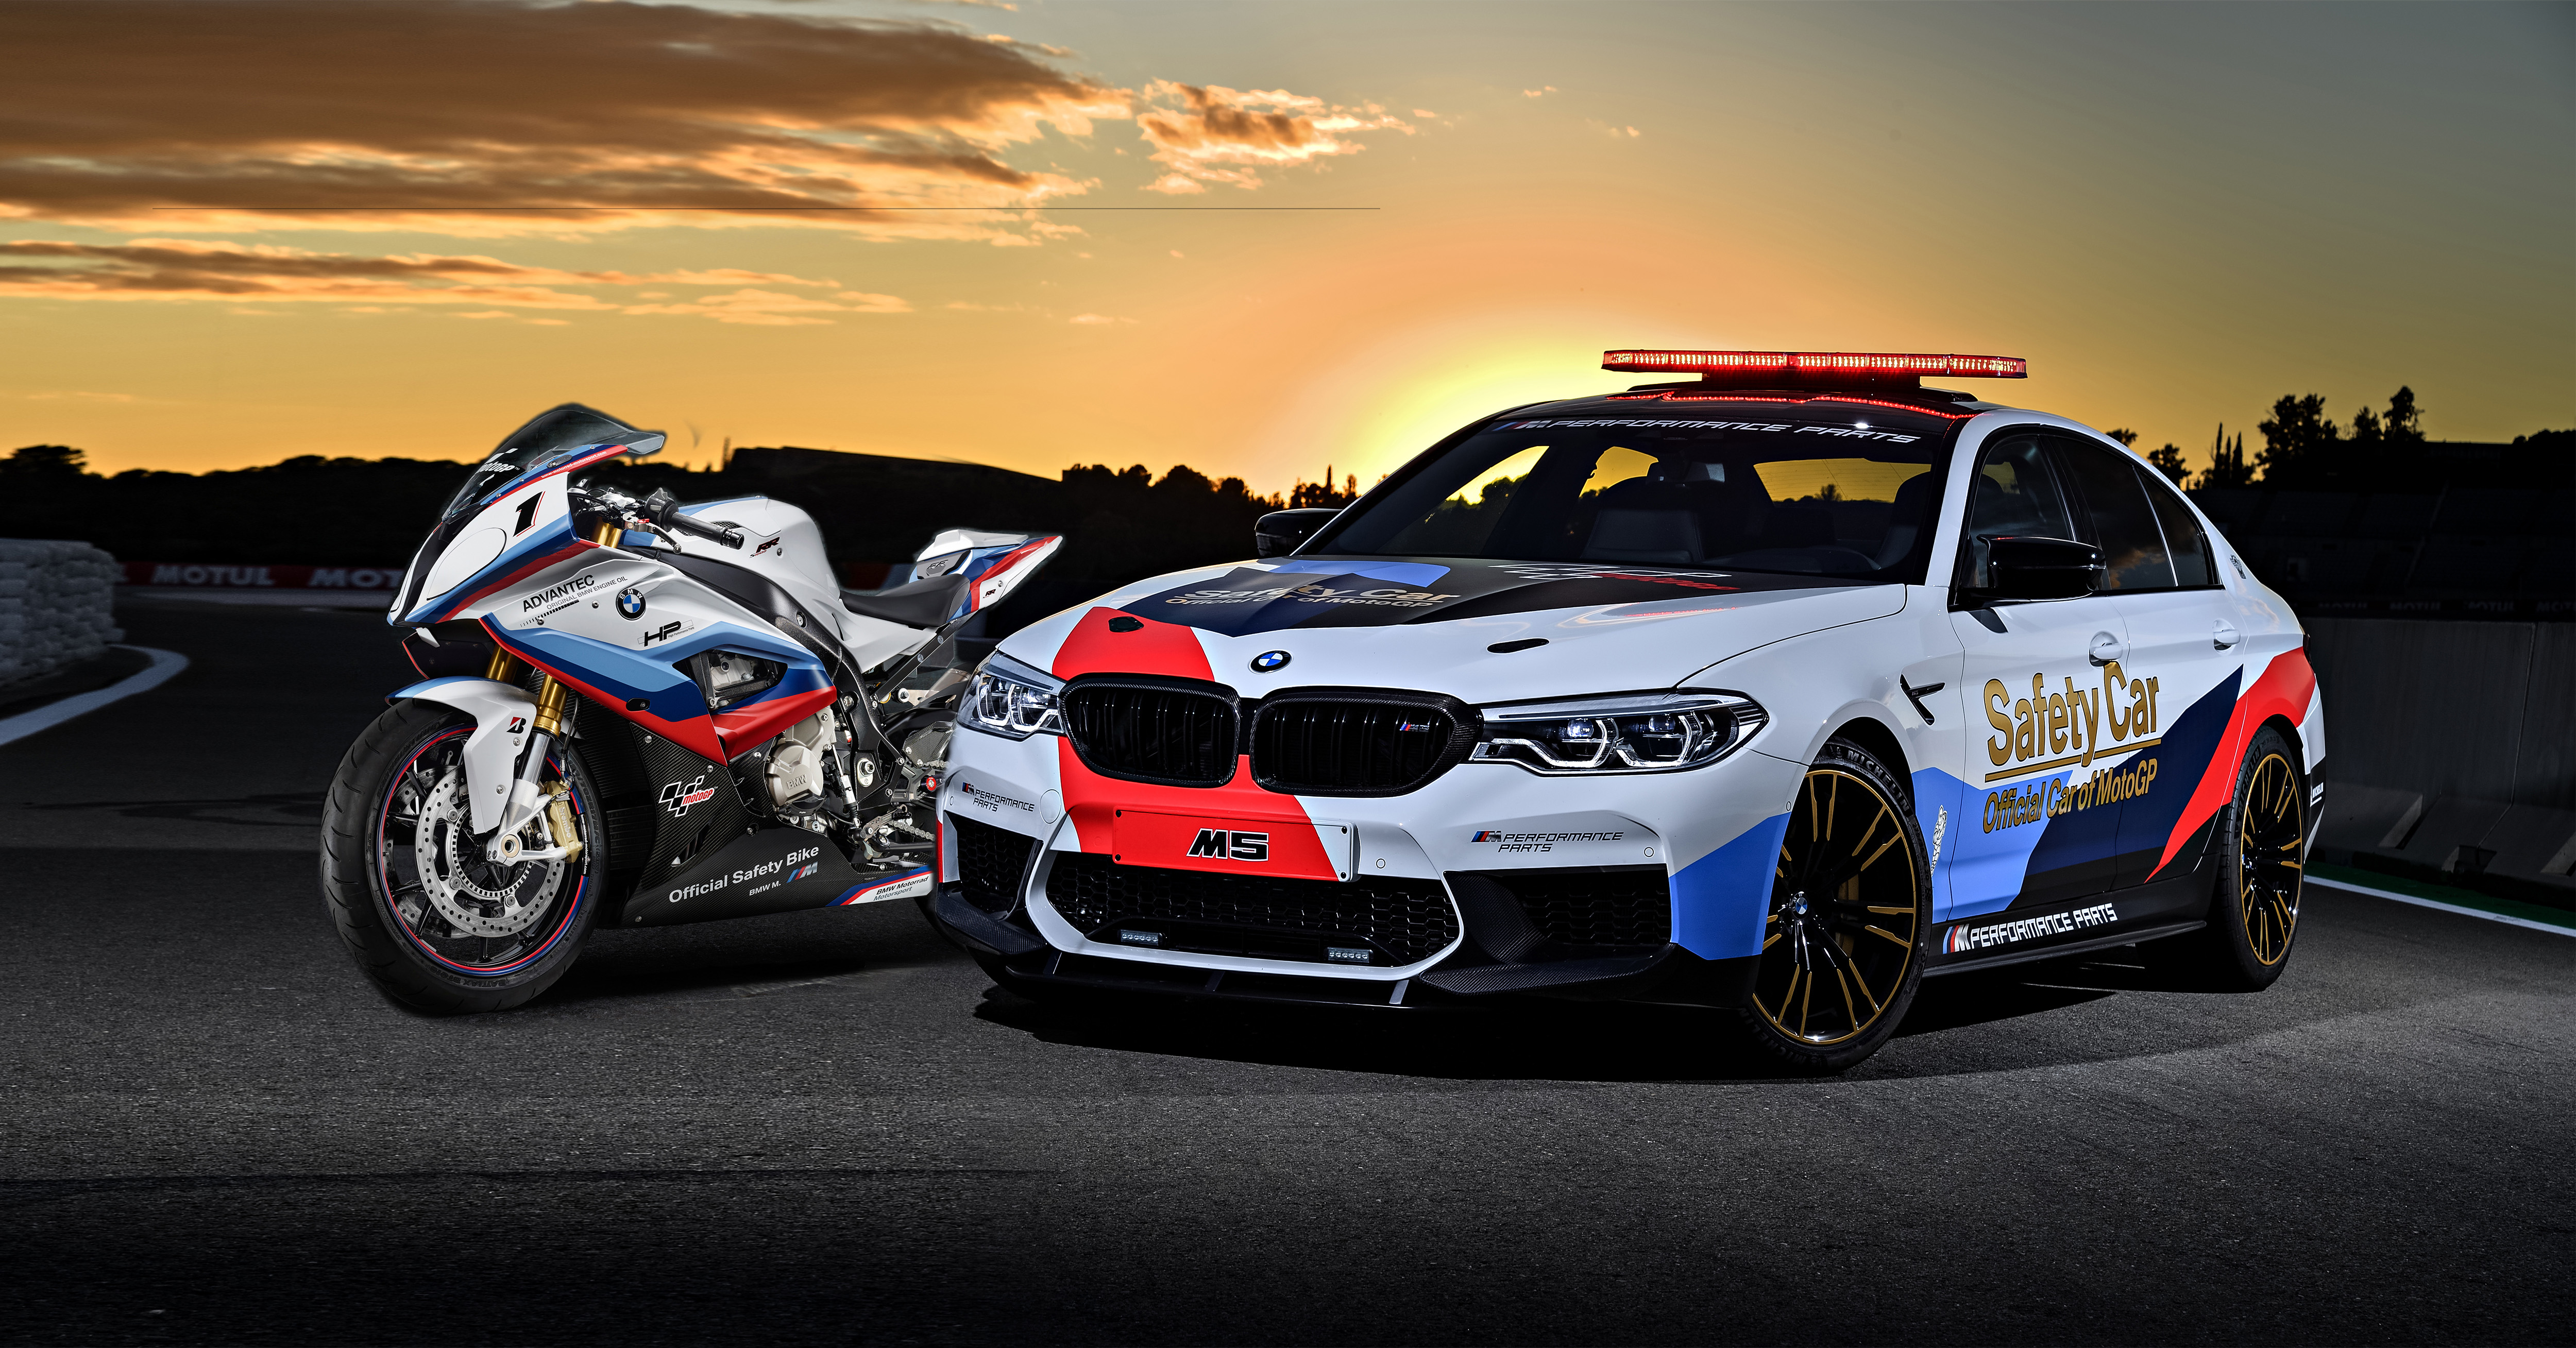 Bmw M5 The Official Car Of Motogp Will Hit Kl Roads Pistonmy